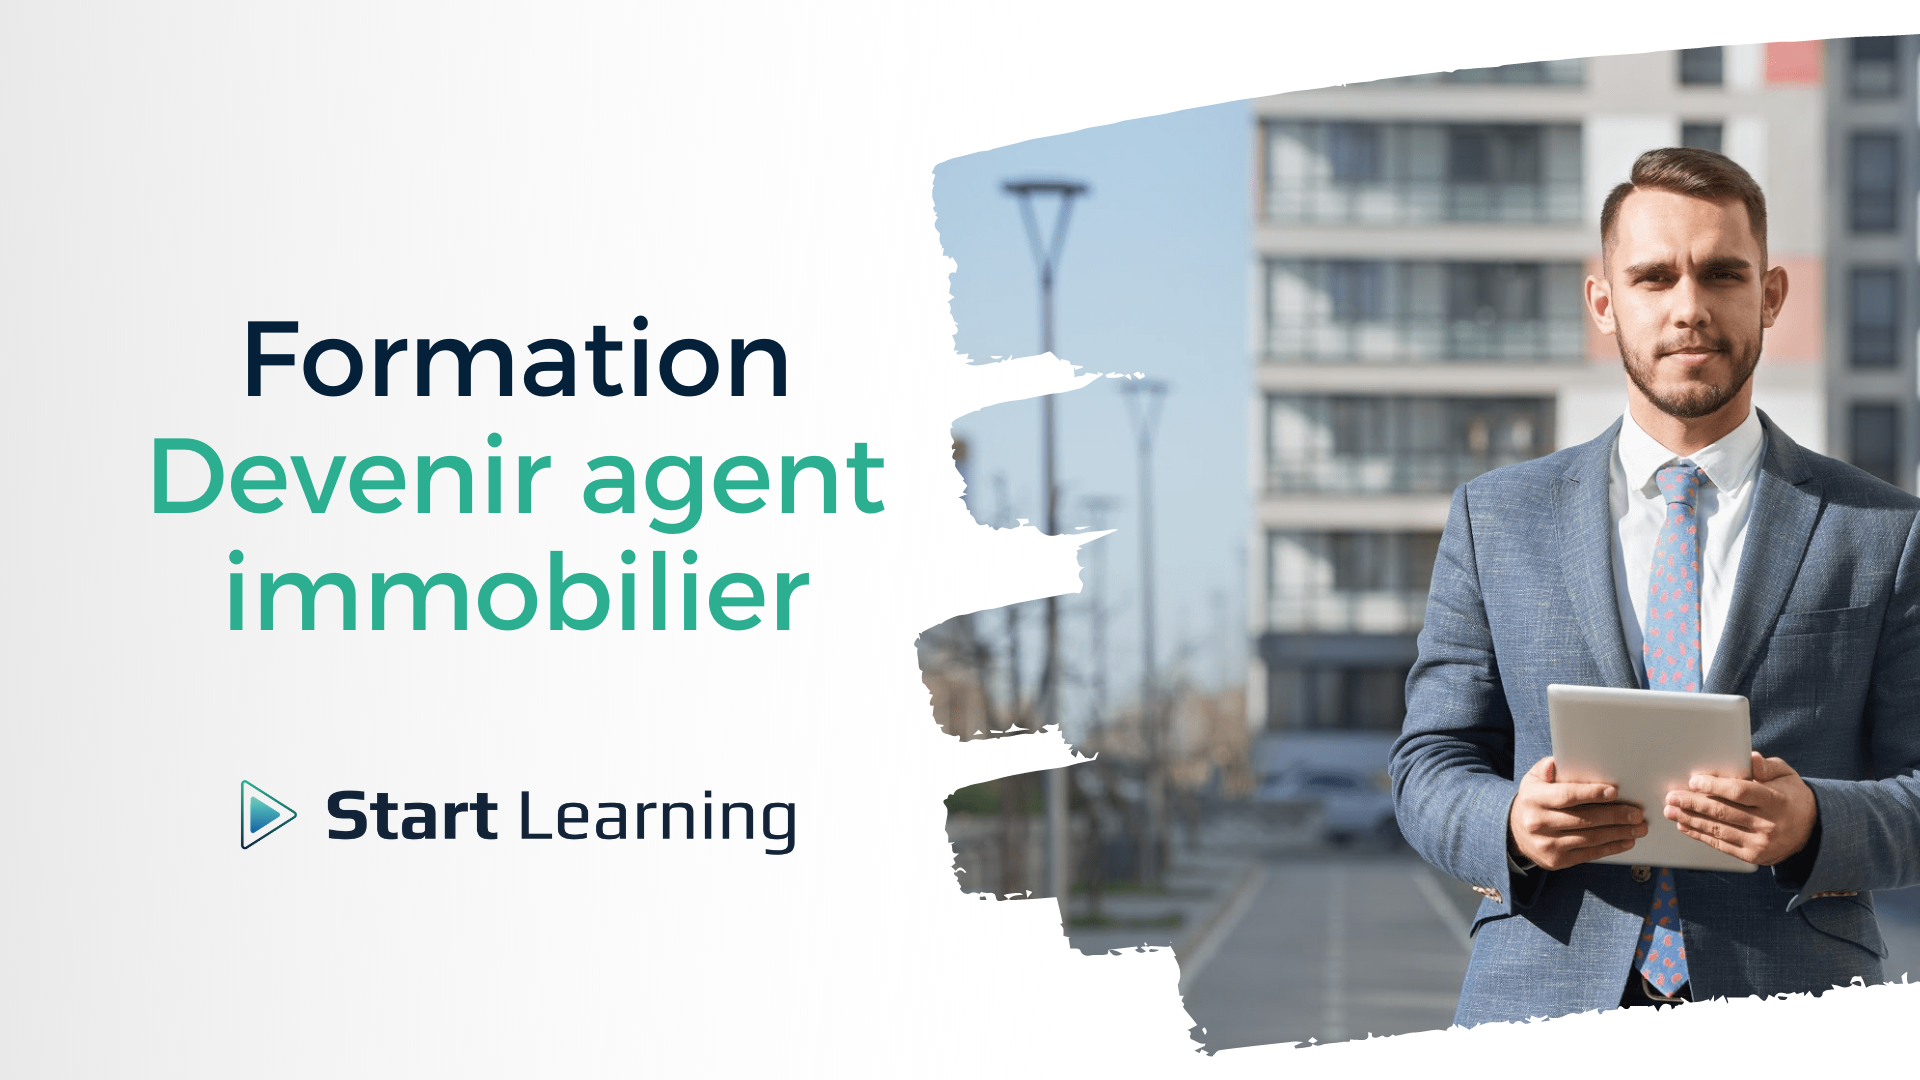 Formation Devenir agent immobilier - Start Learning